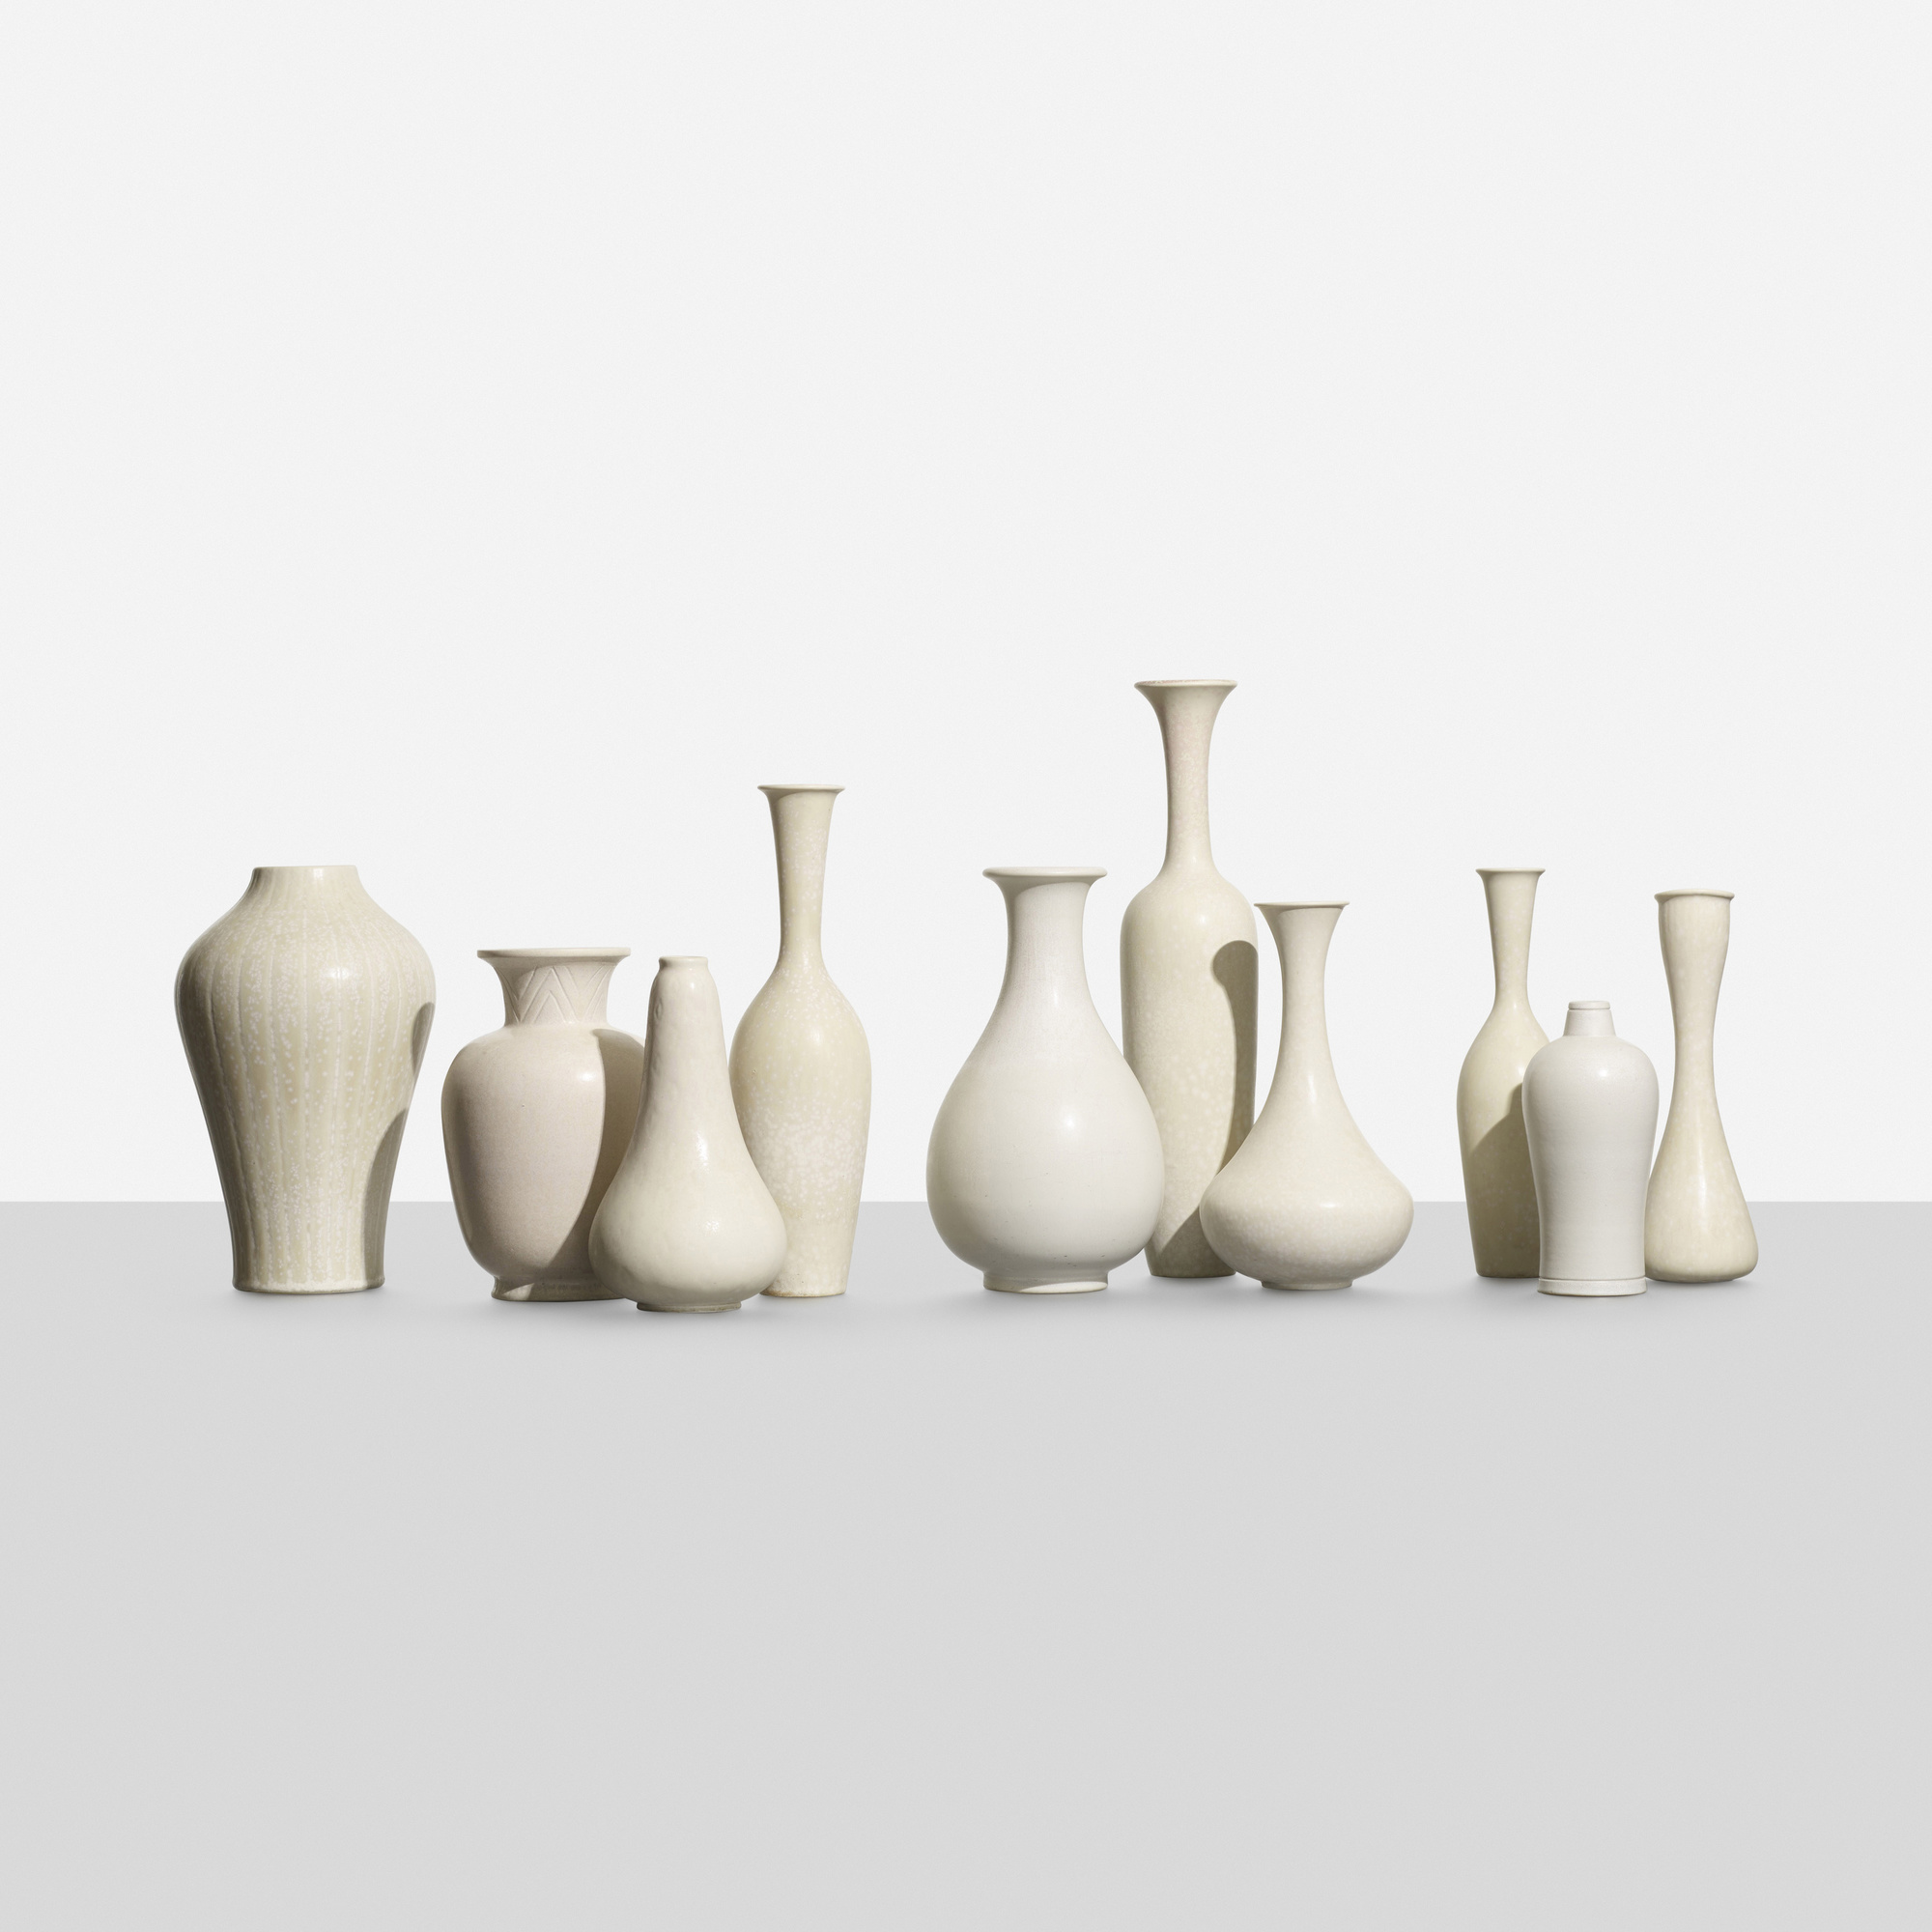 167: Gunnar Nylund / collection of ten vessels (2 of 4)